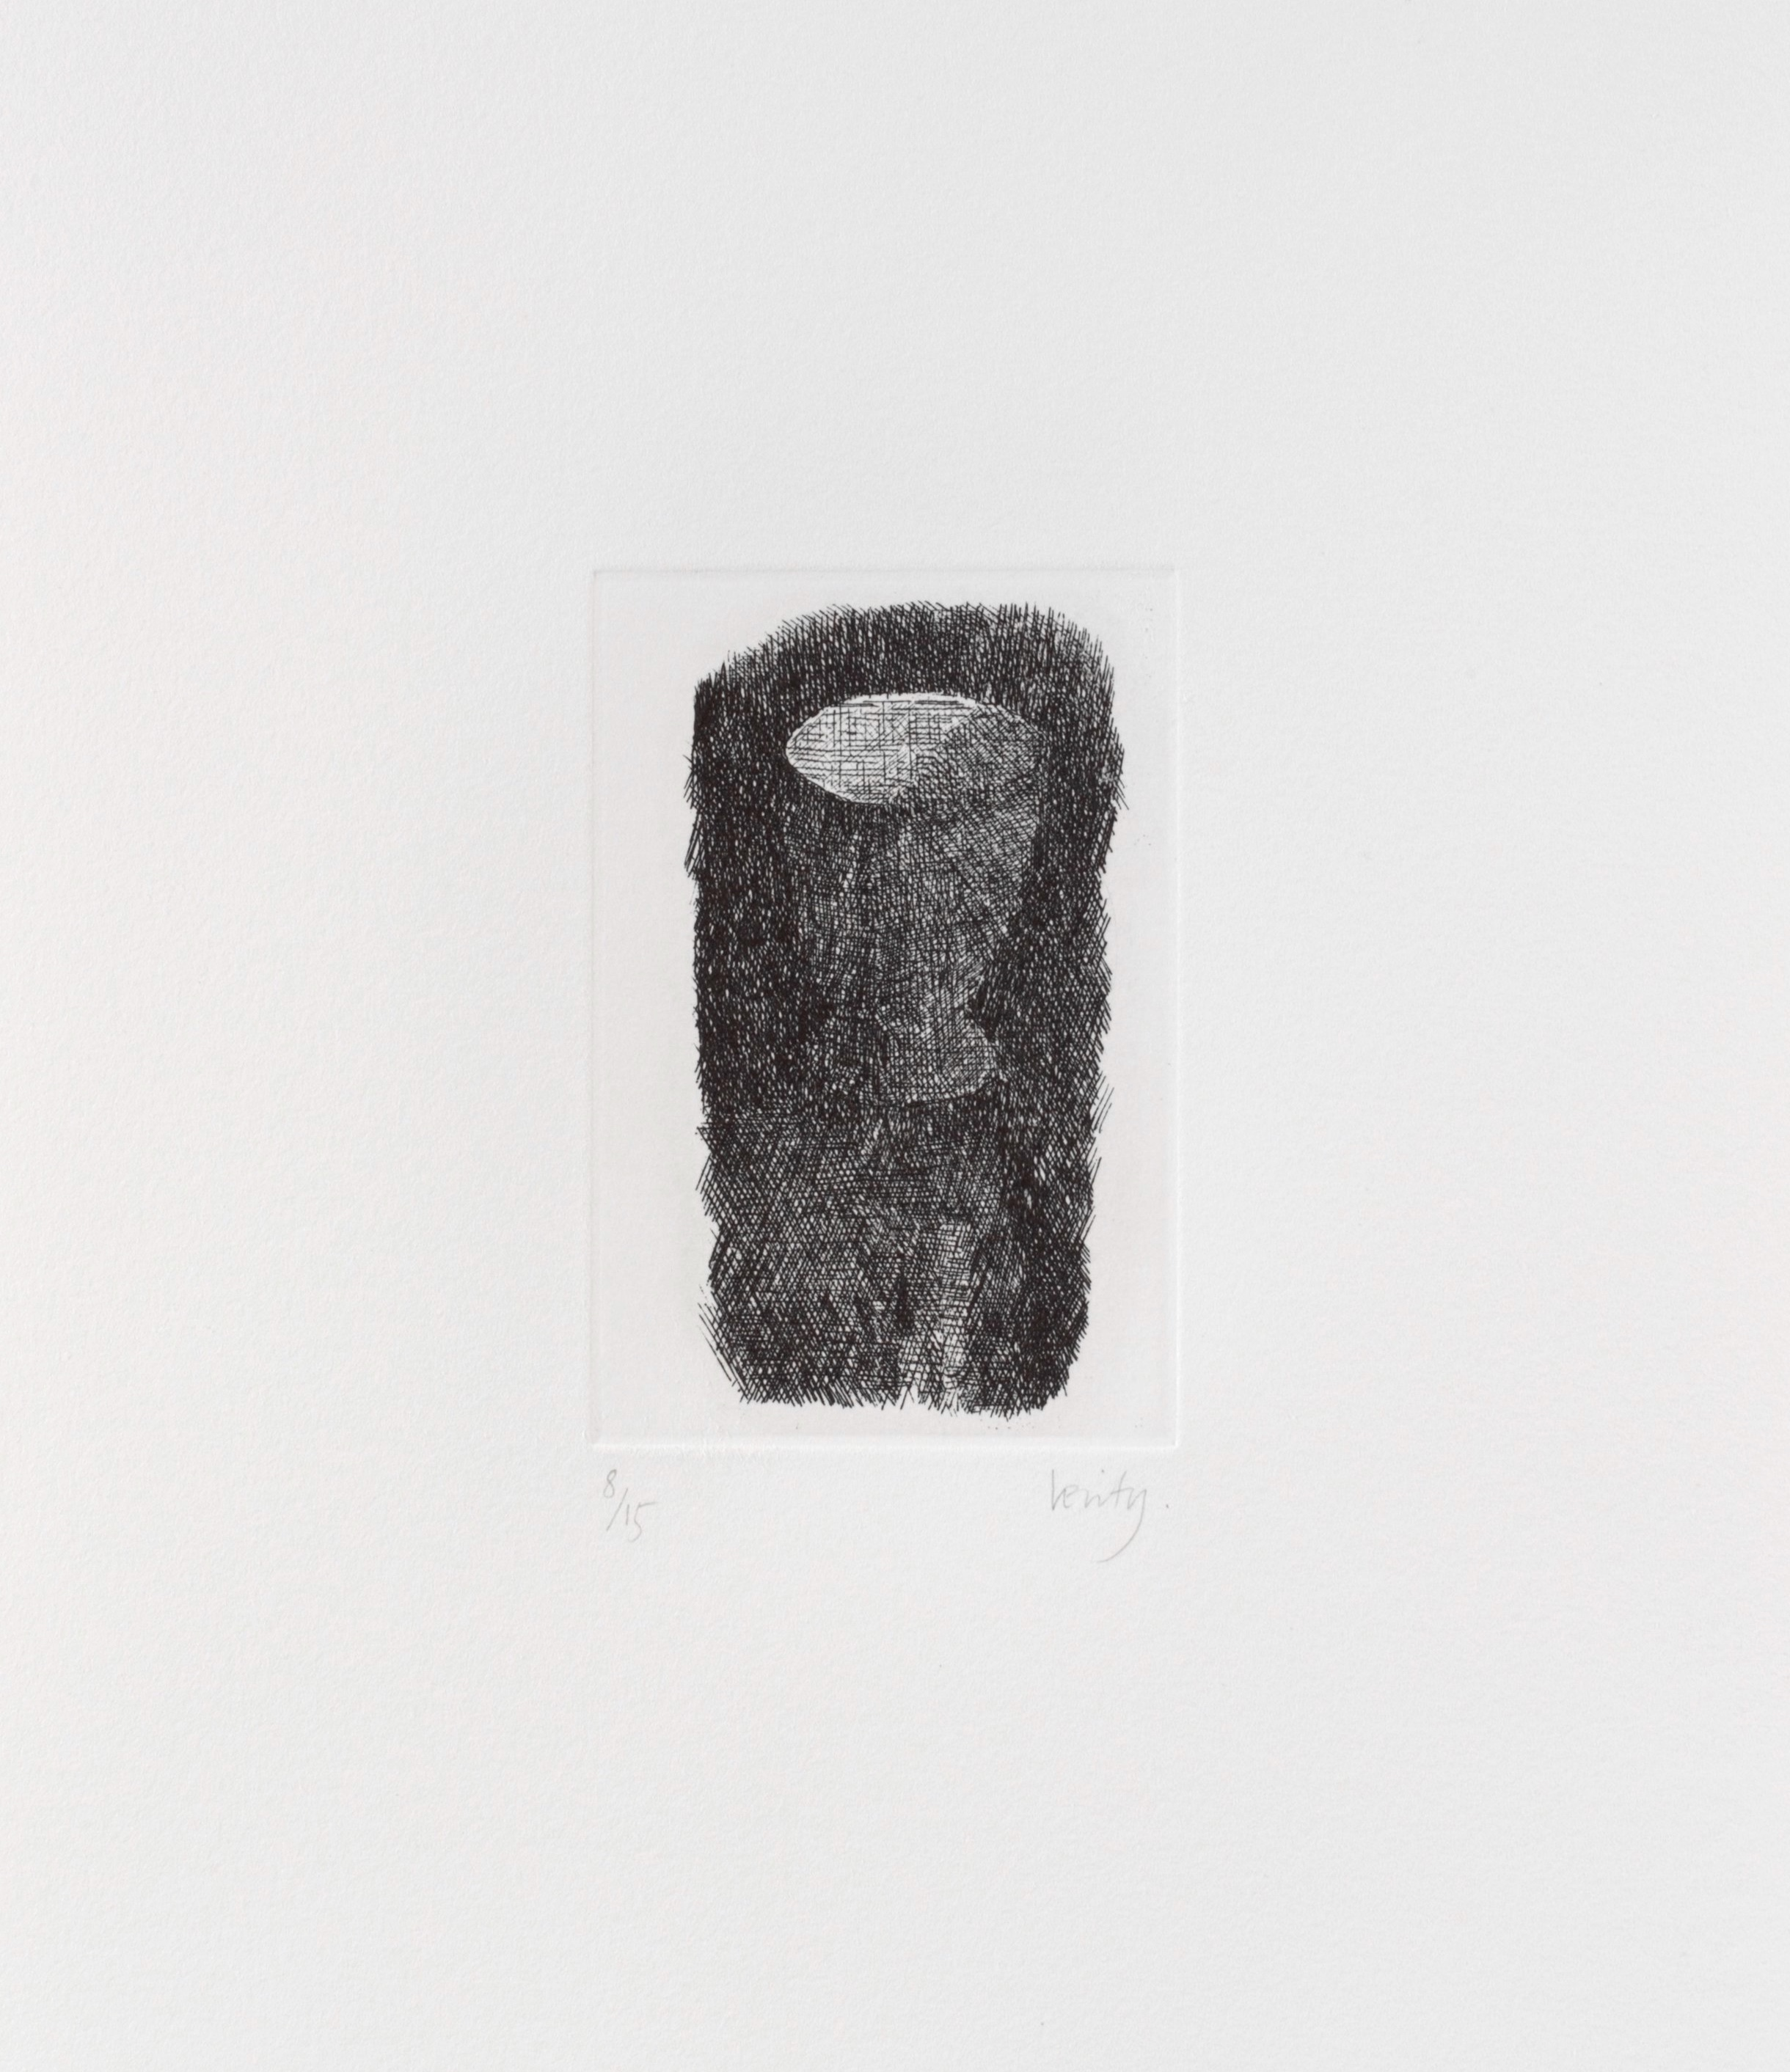 Cup  2006 etching  32 x 25 cm